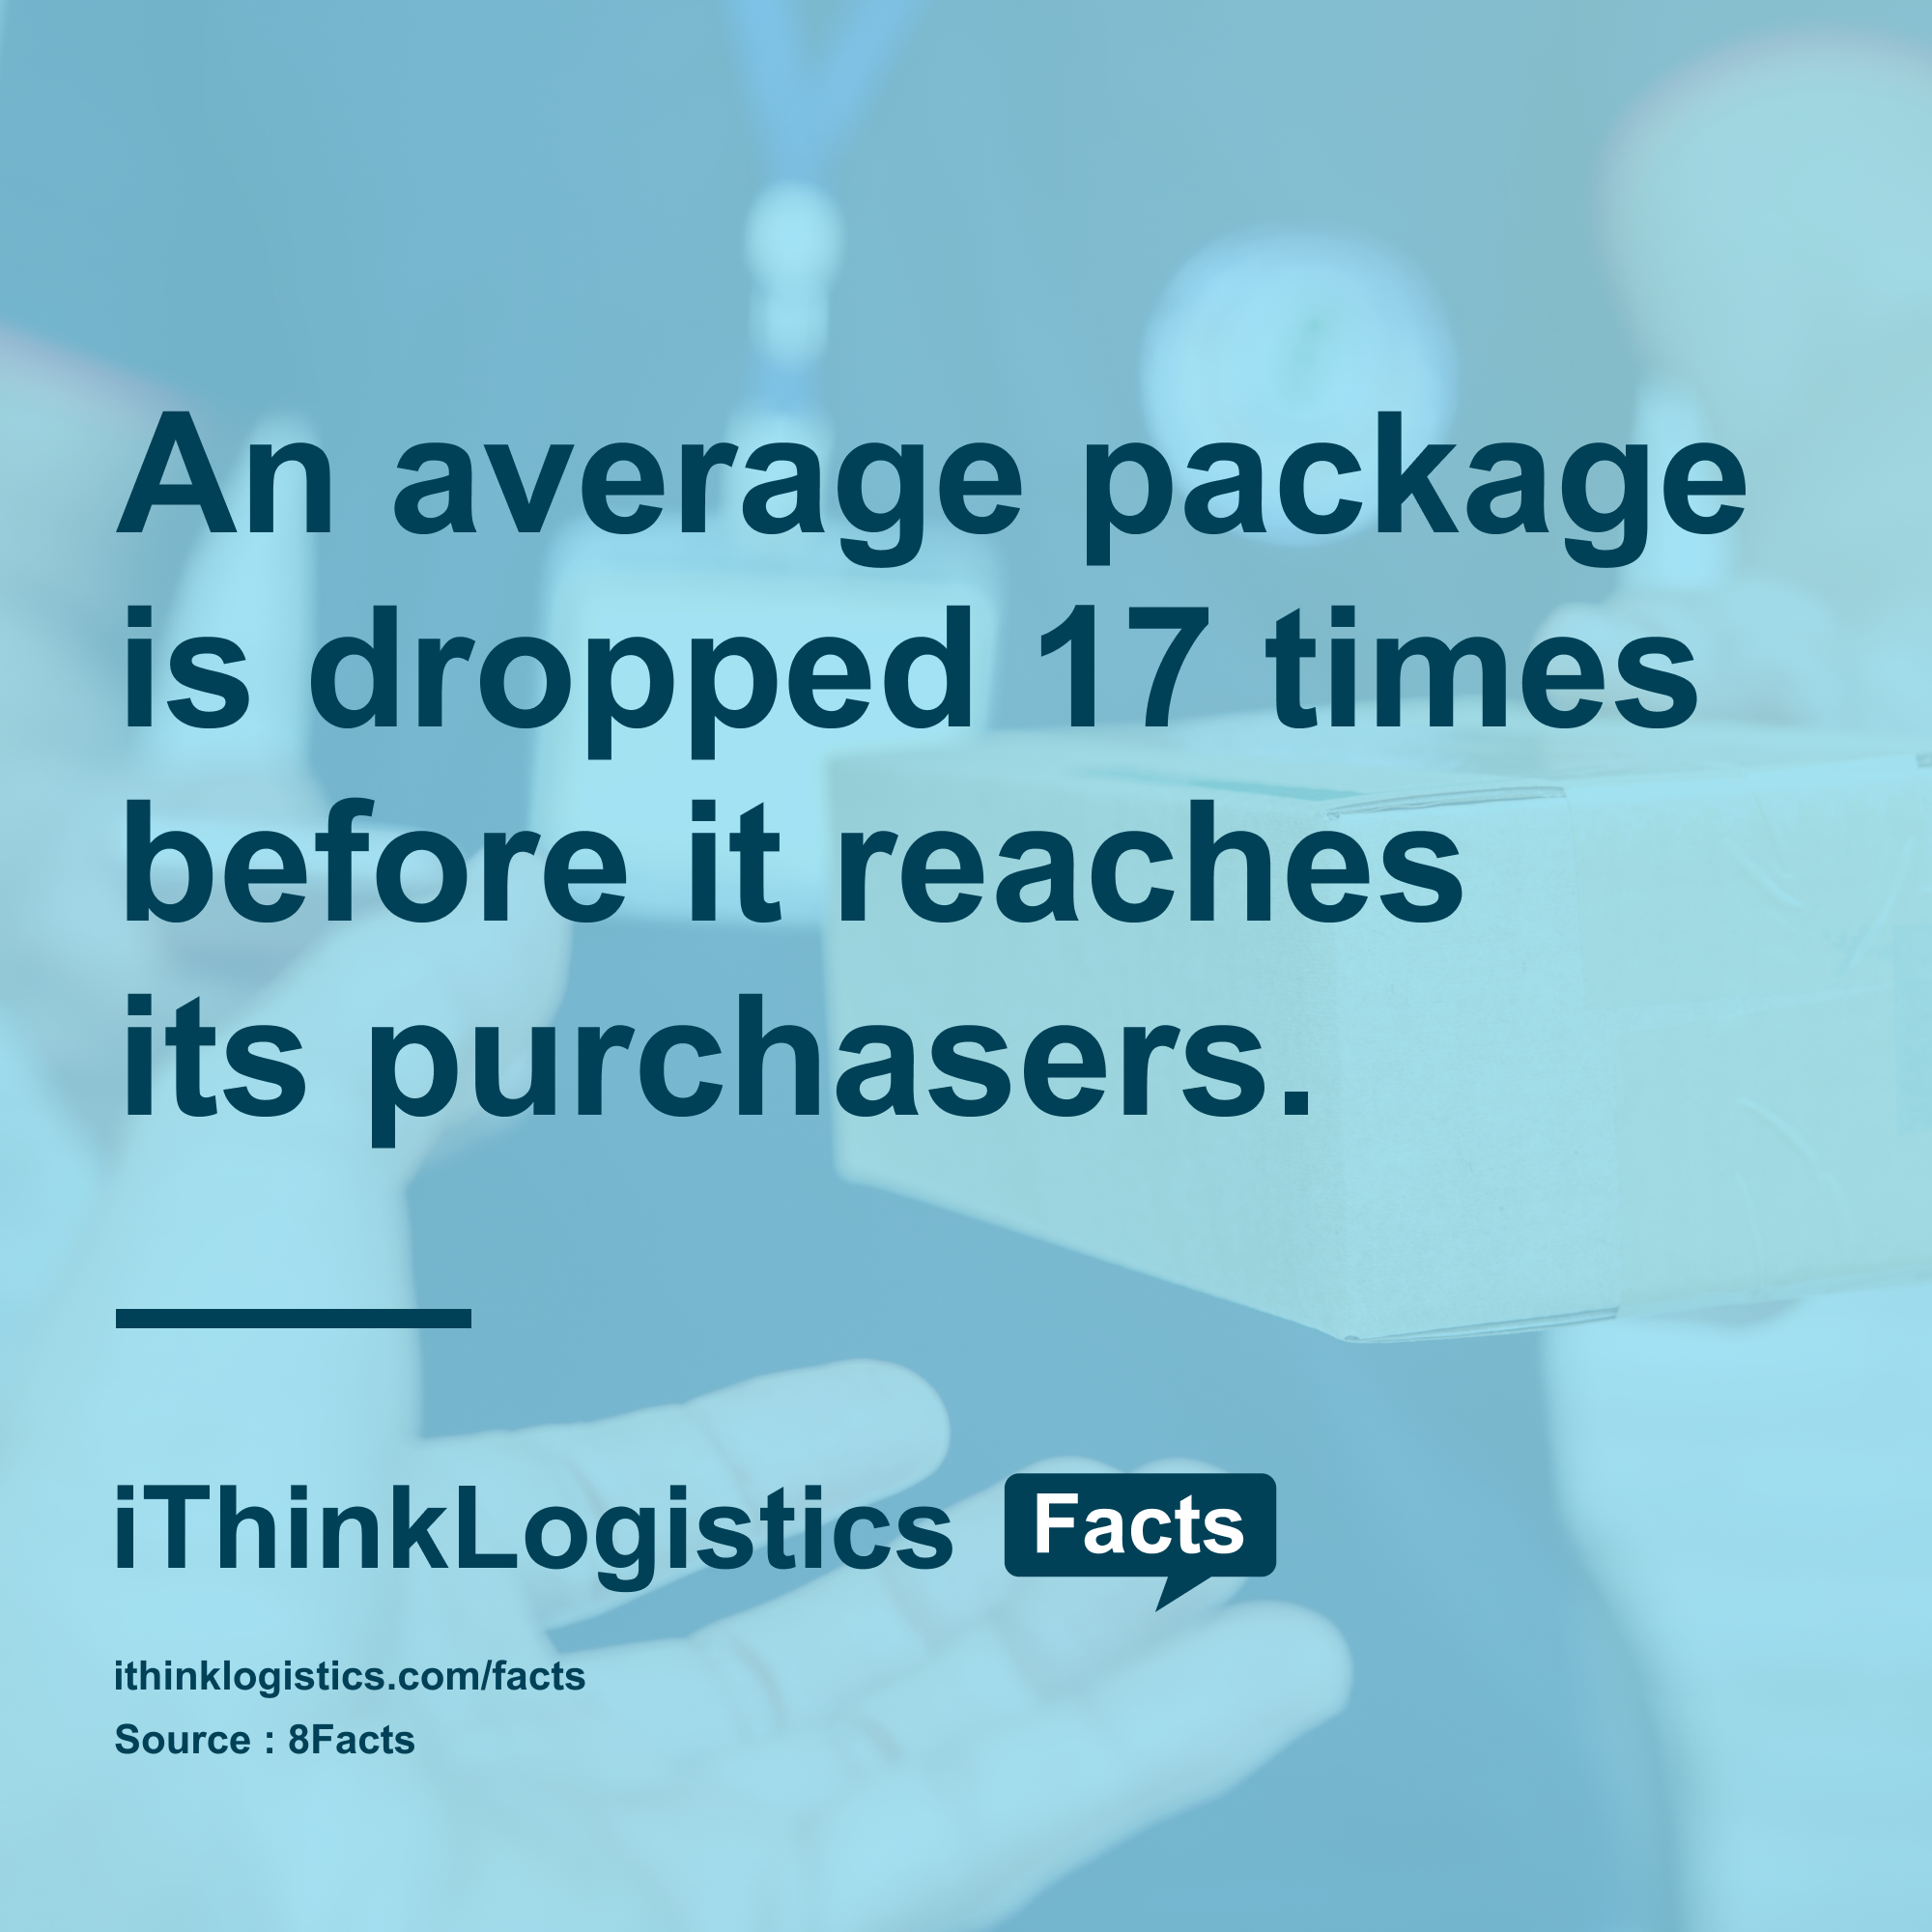 The modernday packaging ensures the parcel still reaches